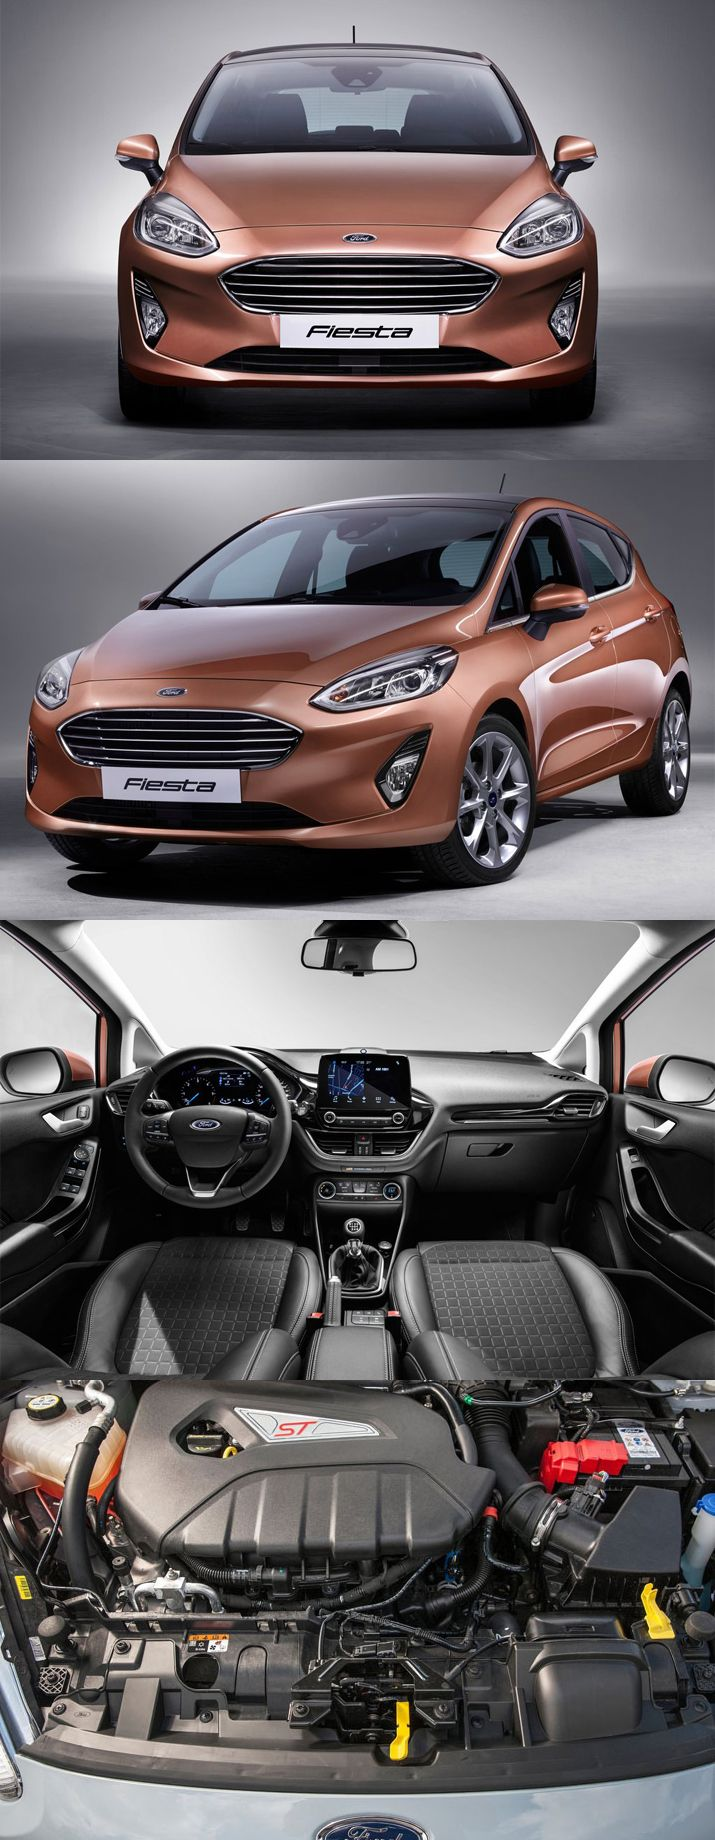 Ford fiesta the best selling item in small family car category fordfiesta familycar